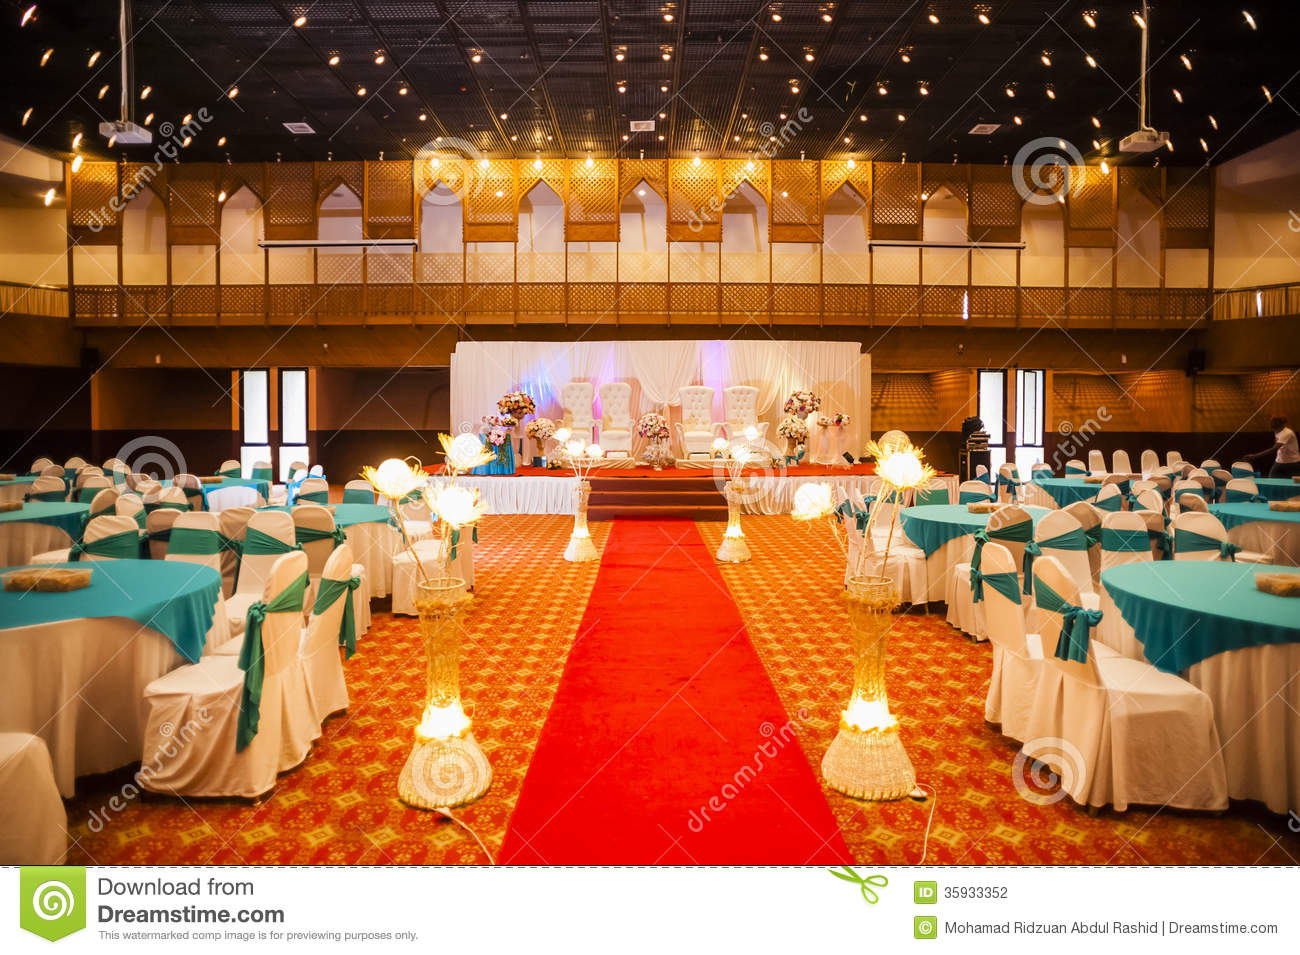 Wedding hall decoration stock photography image 35933352 for Decoration images